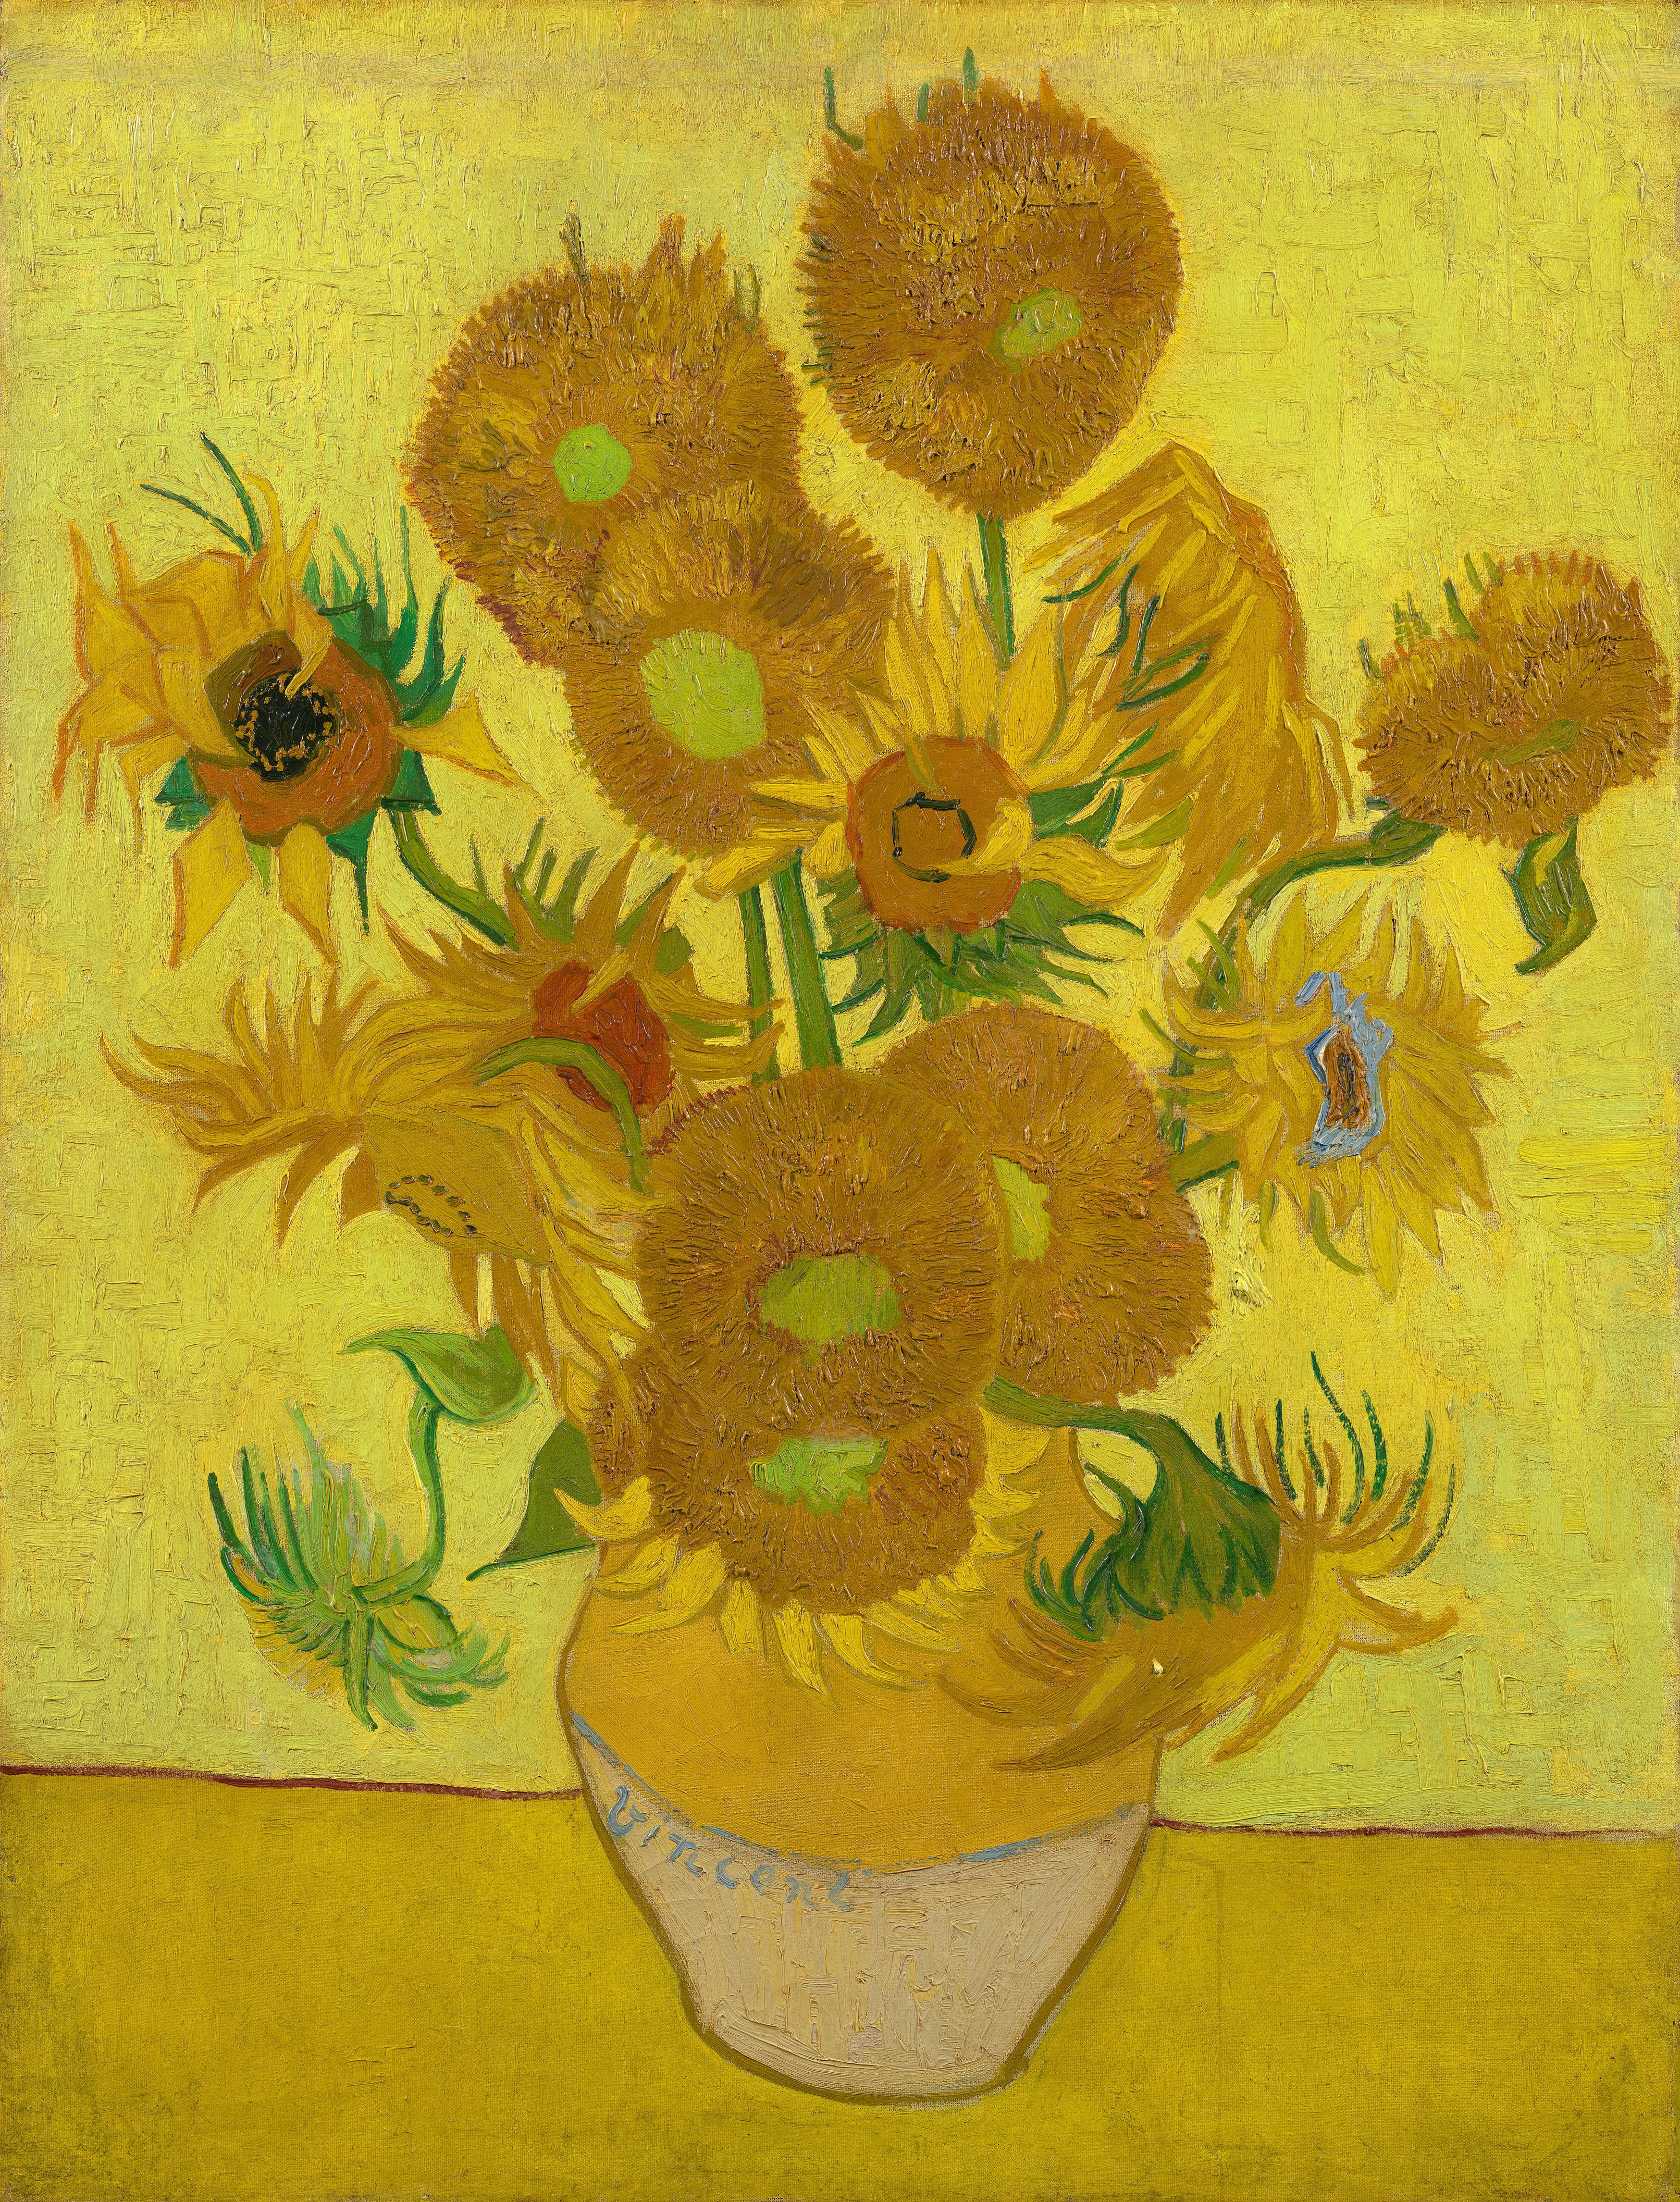 vase of sunflowers henri matisse of vincent van gogh wikipedia in a ceramic vase with sunflowers on a yellow surface against a bright yellow background